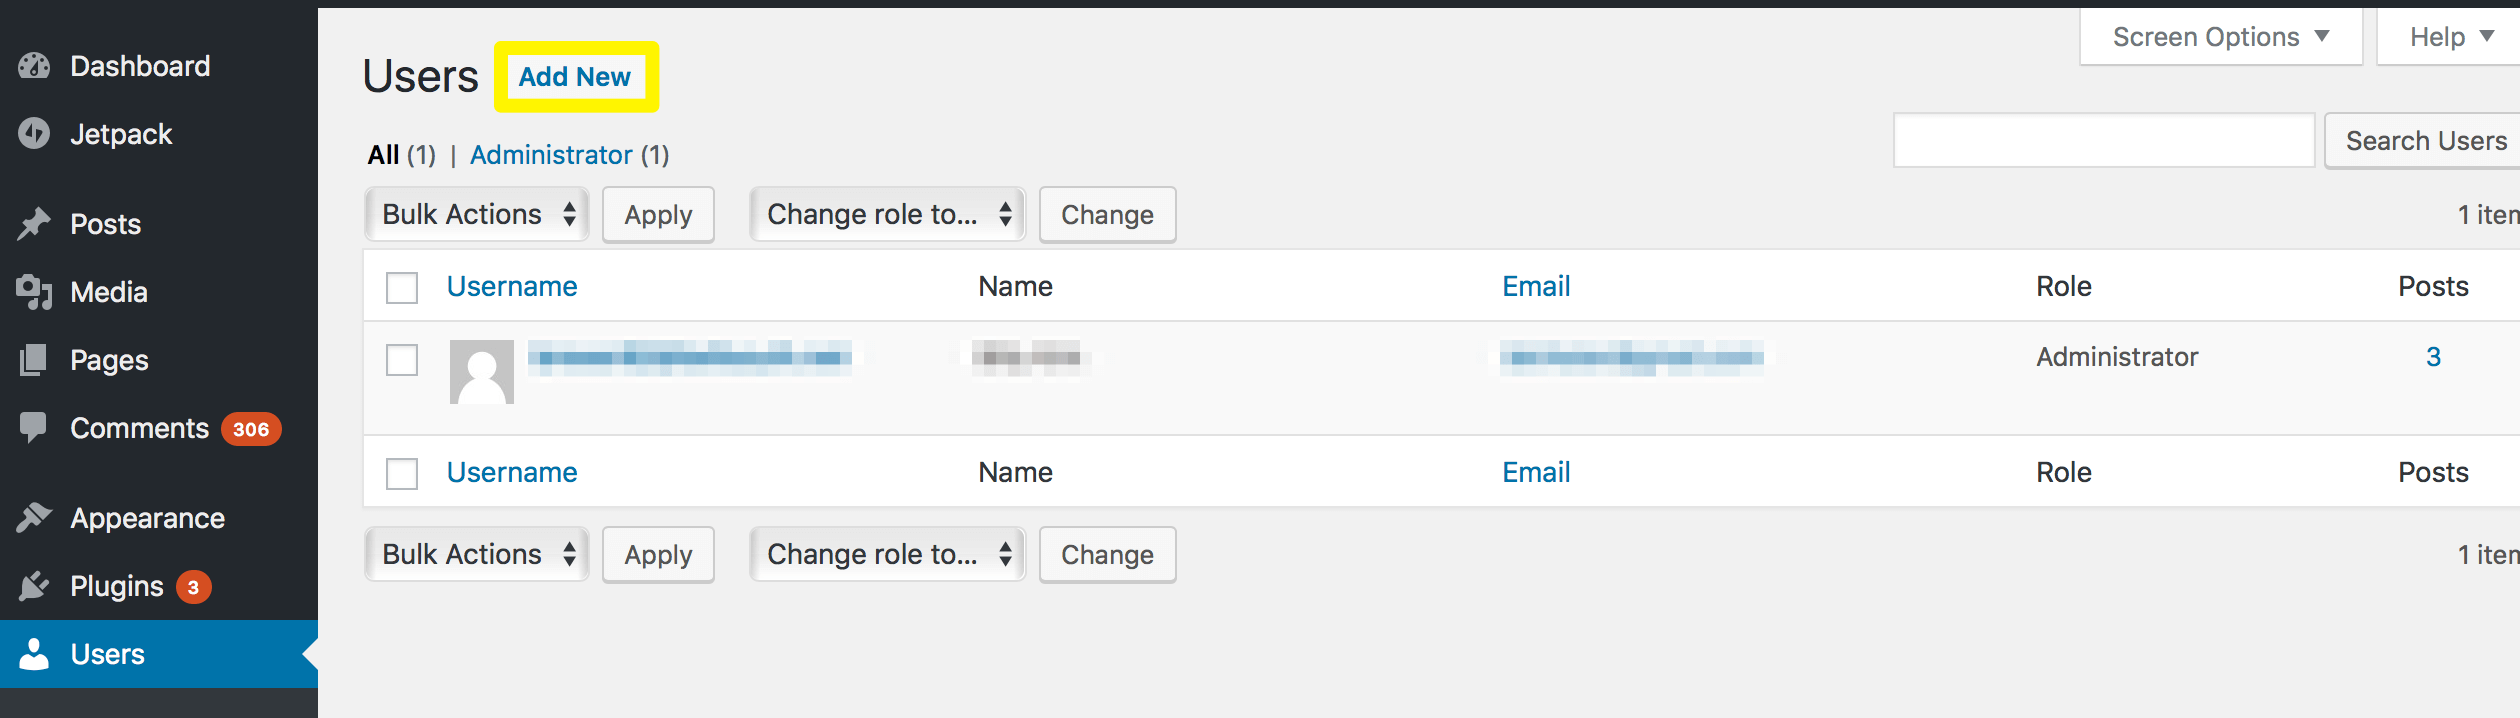 Adding a new WordPress user and assigning a role.